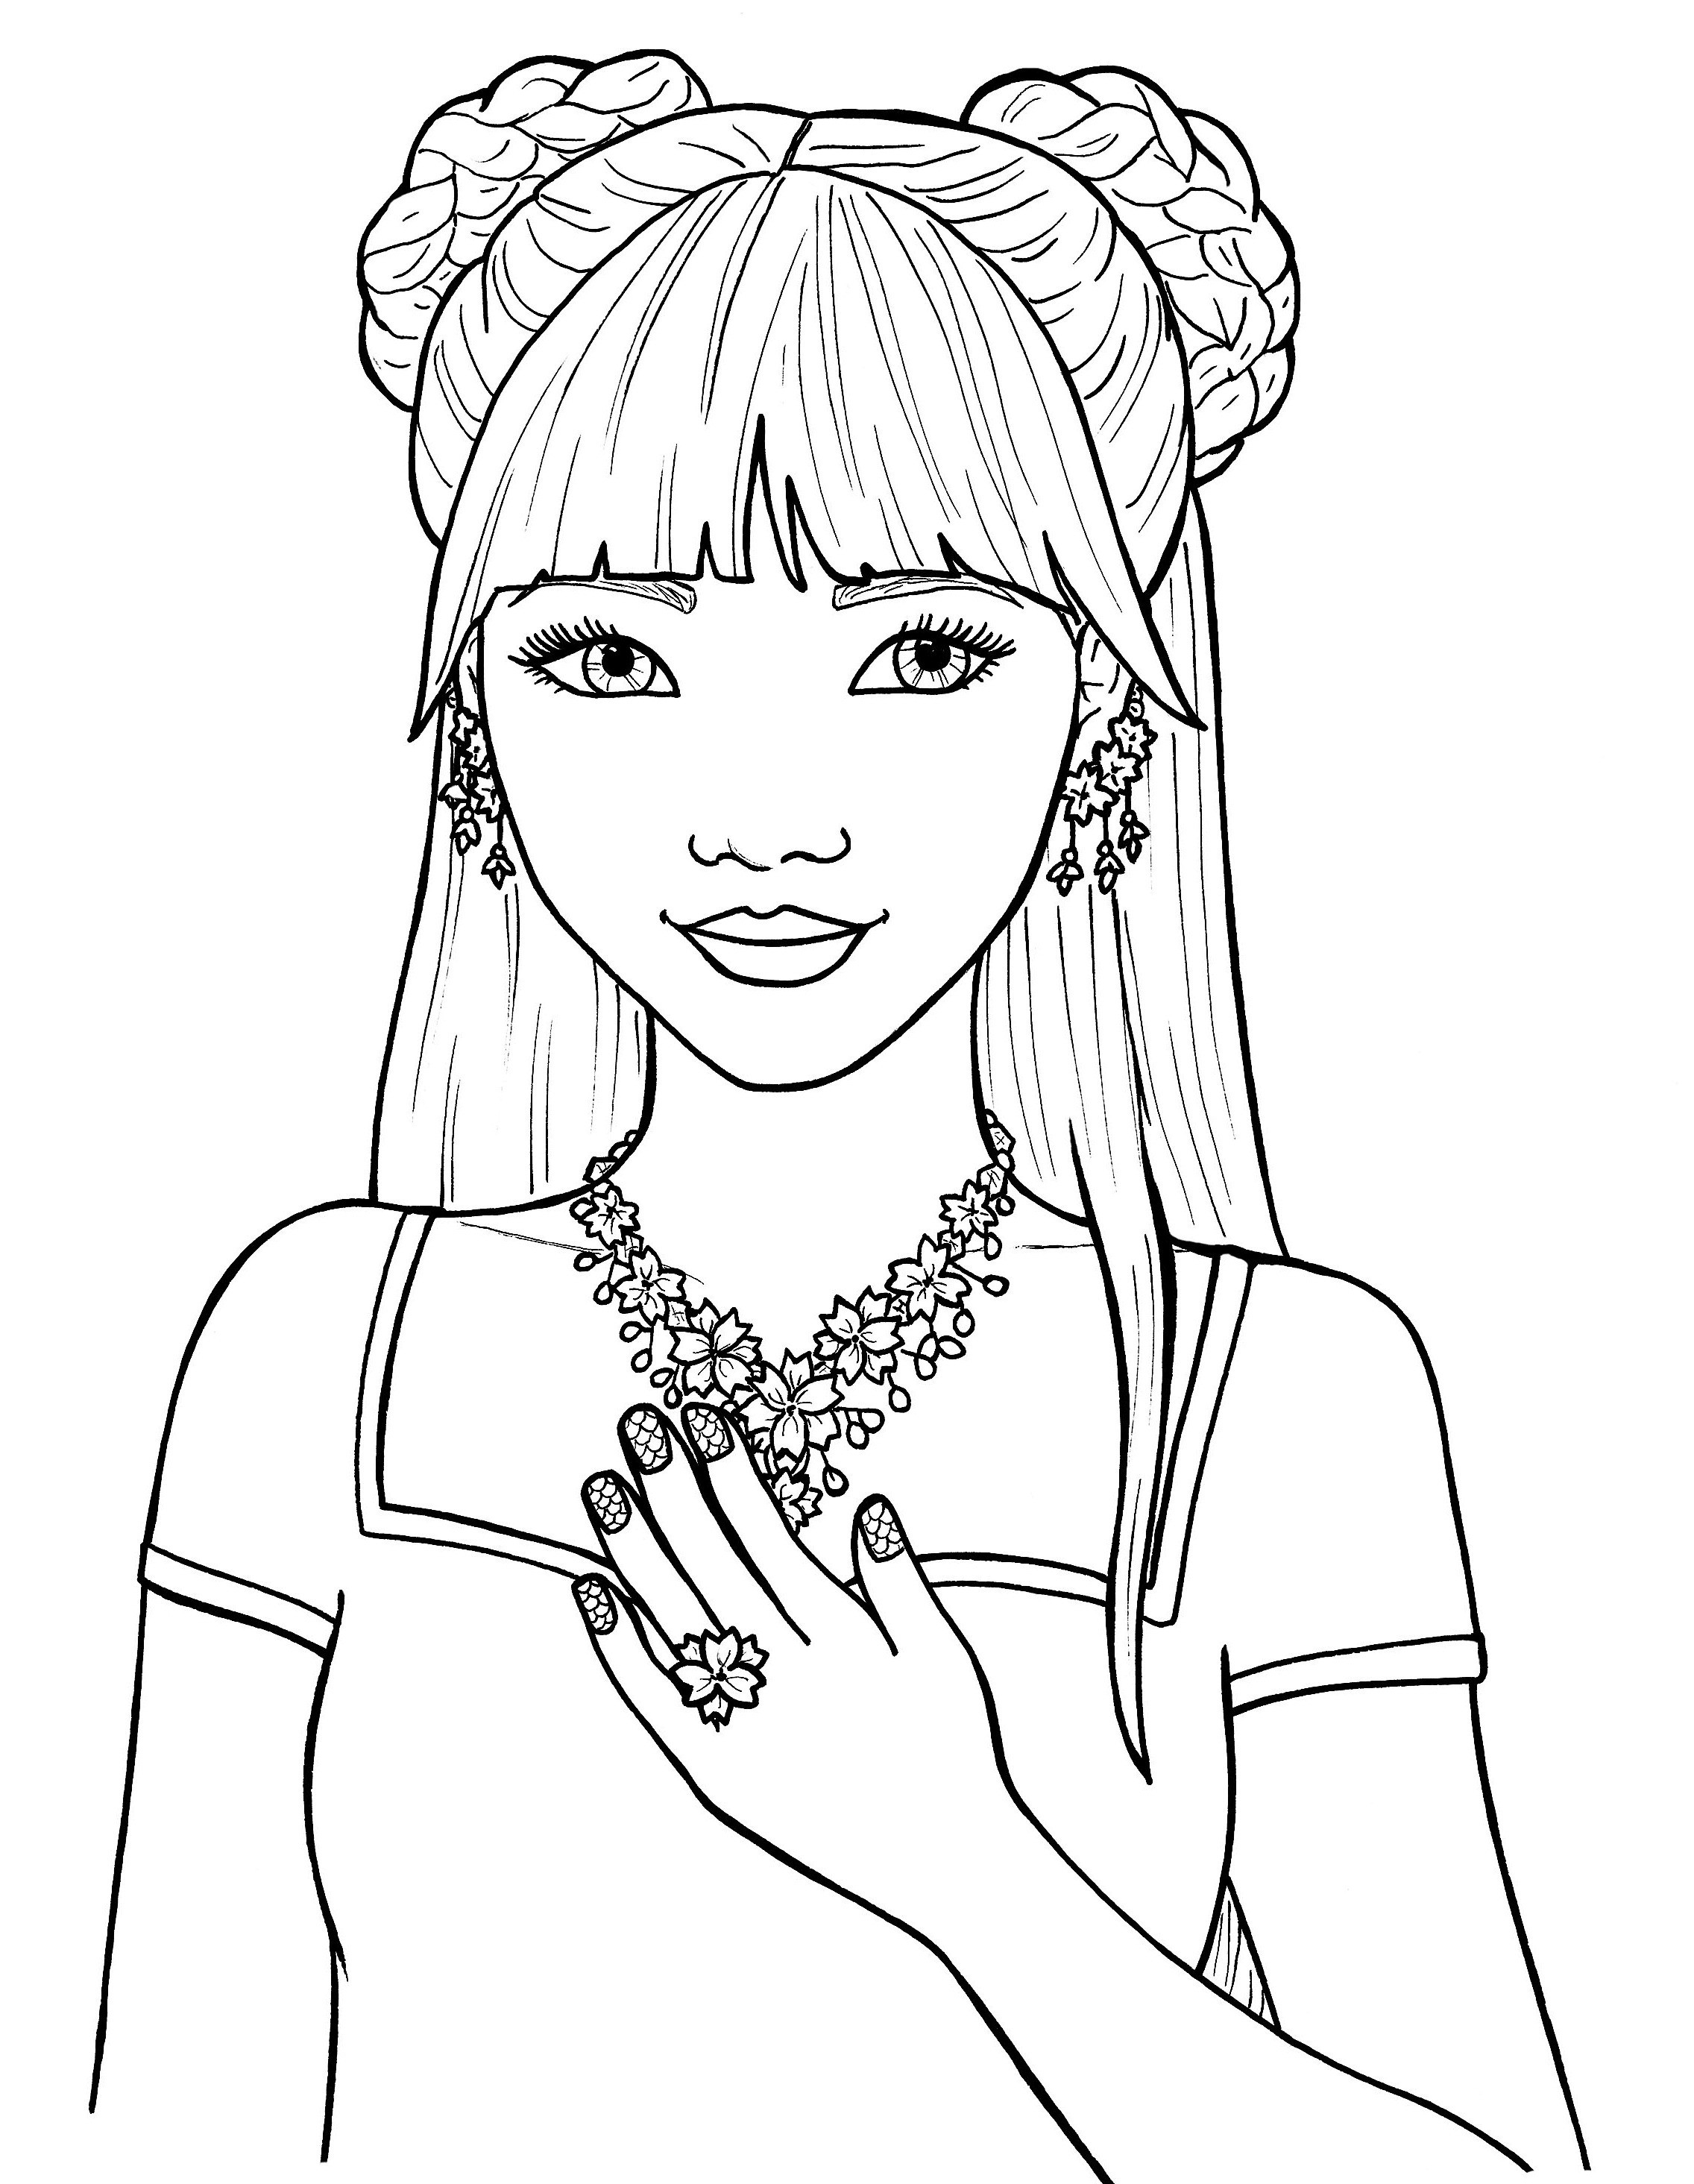 Girl Hair Coloring Pages Copy Coloring Pages for Tween Girls Gallery ...